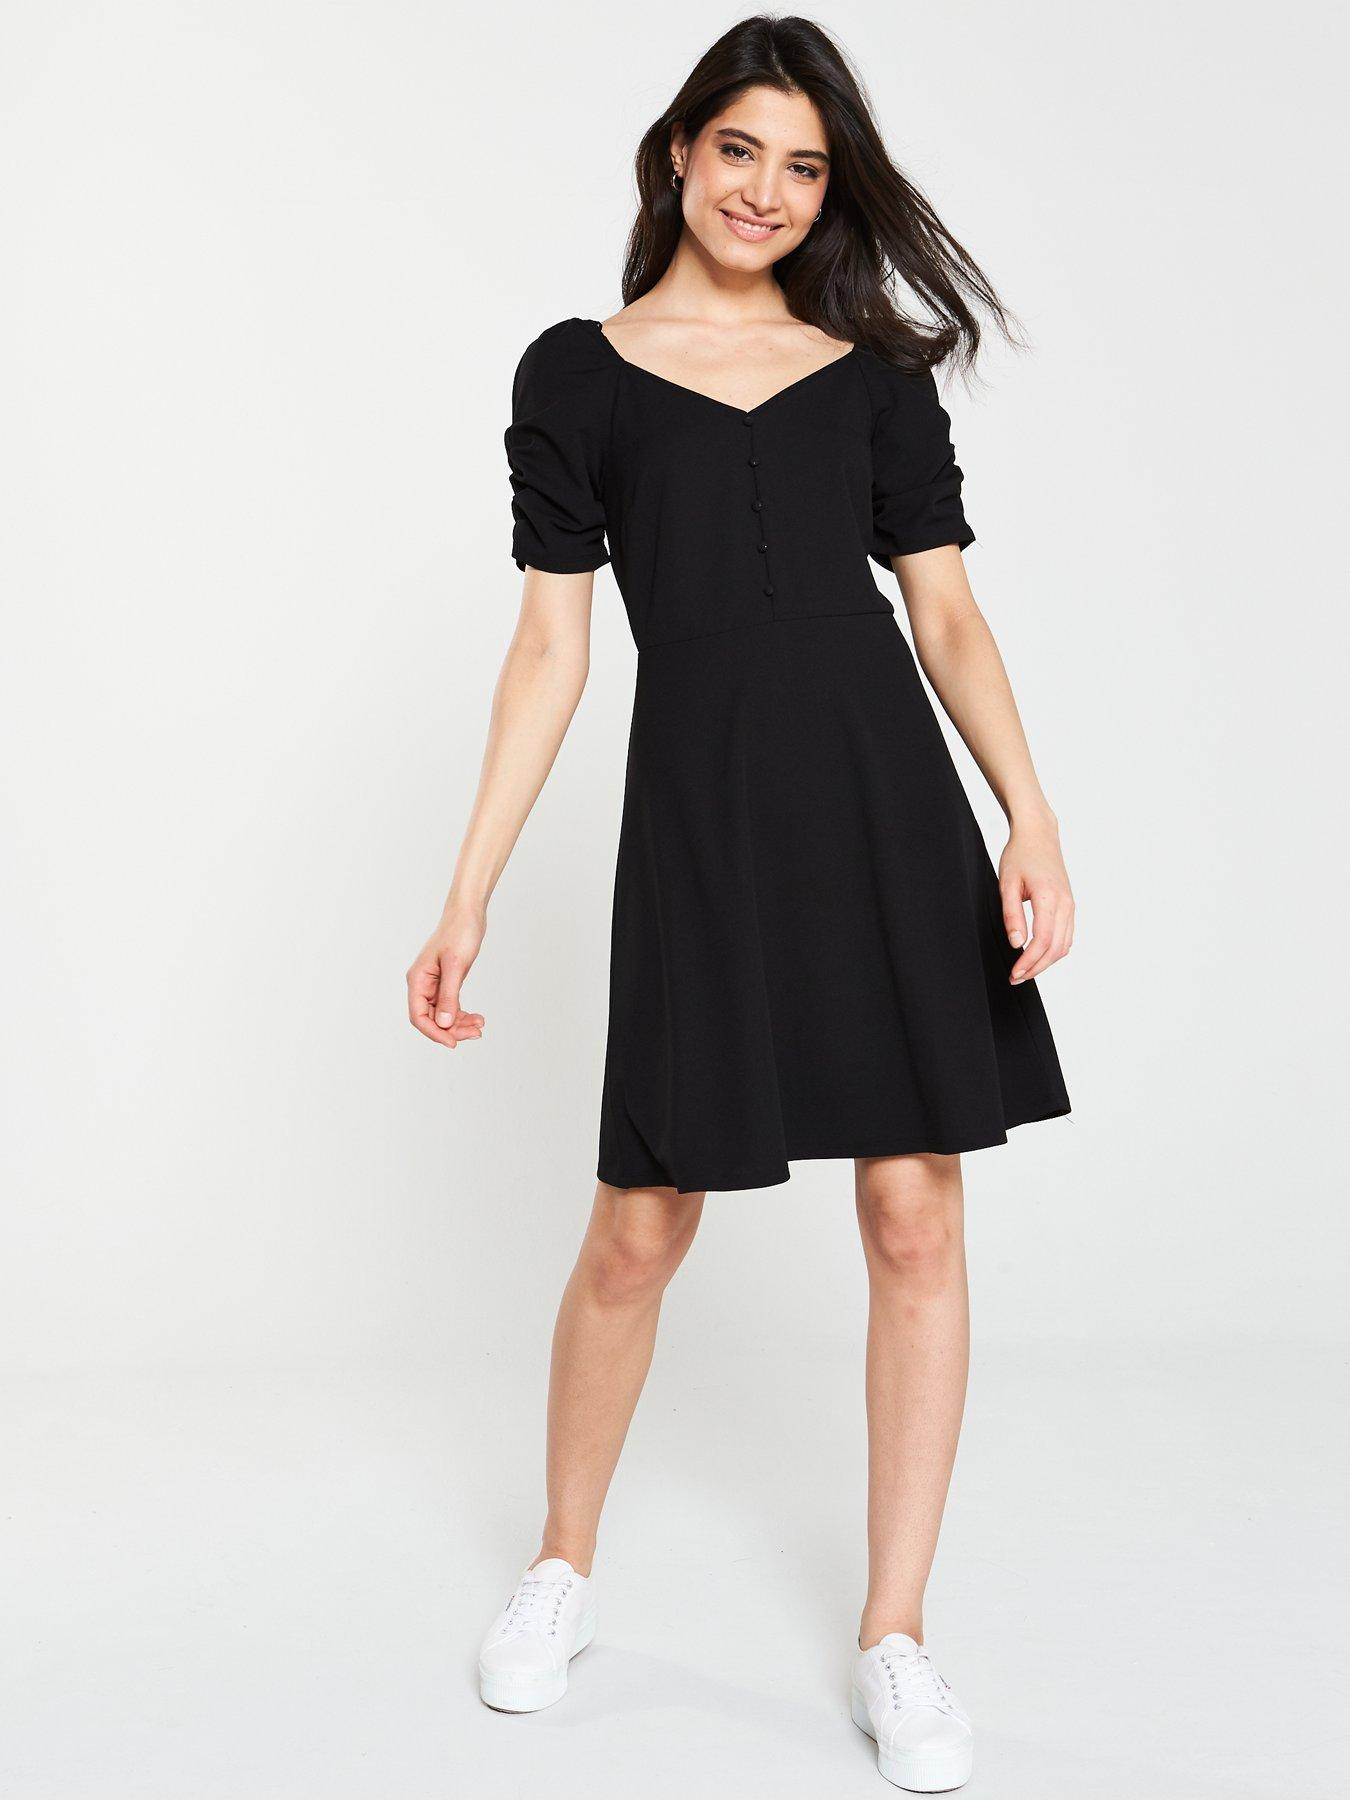 DressesLittle co Black uk Very Dress qMGSVjLzUp